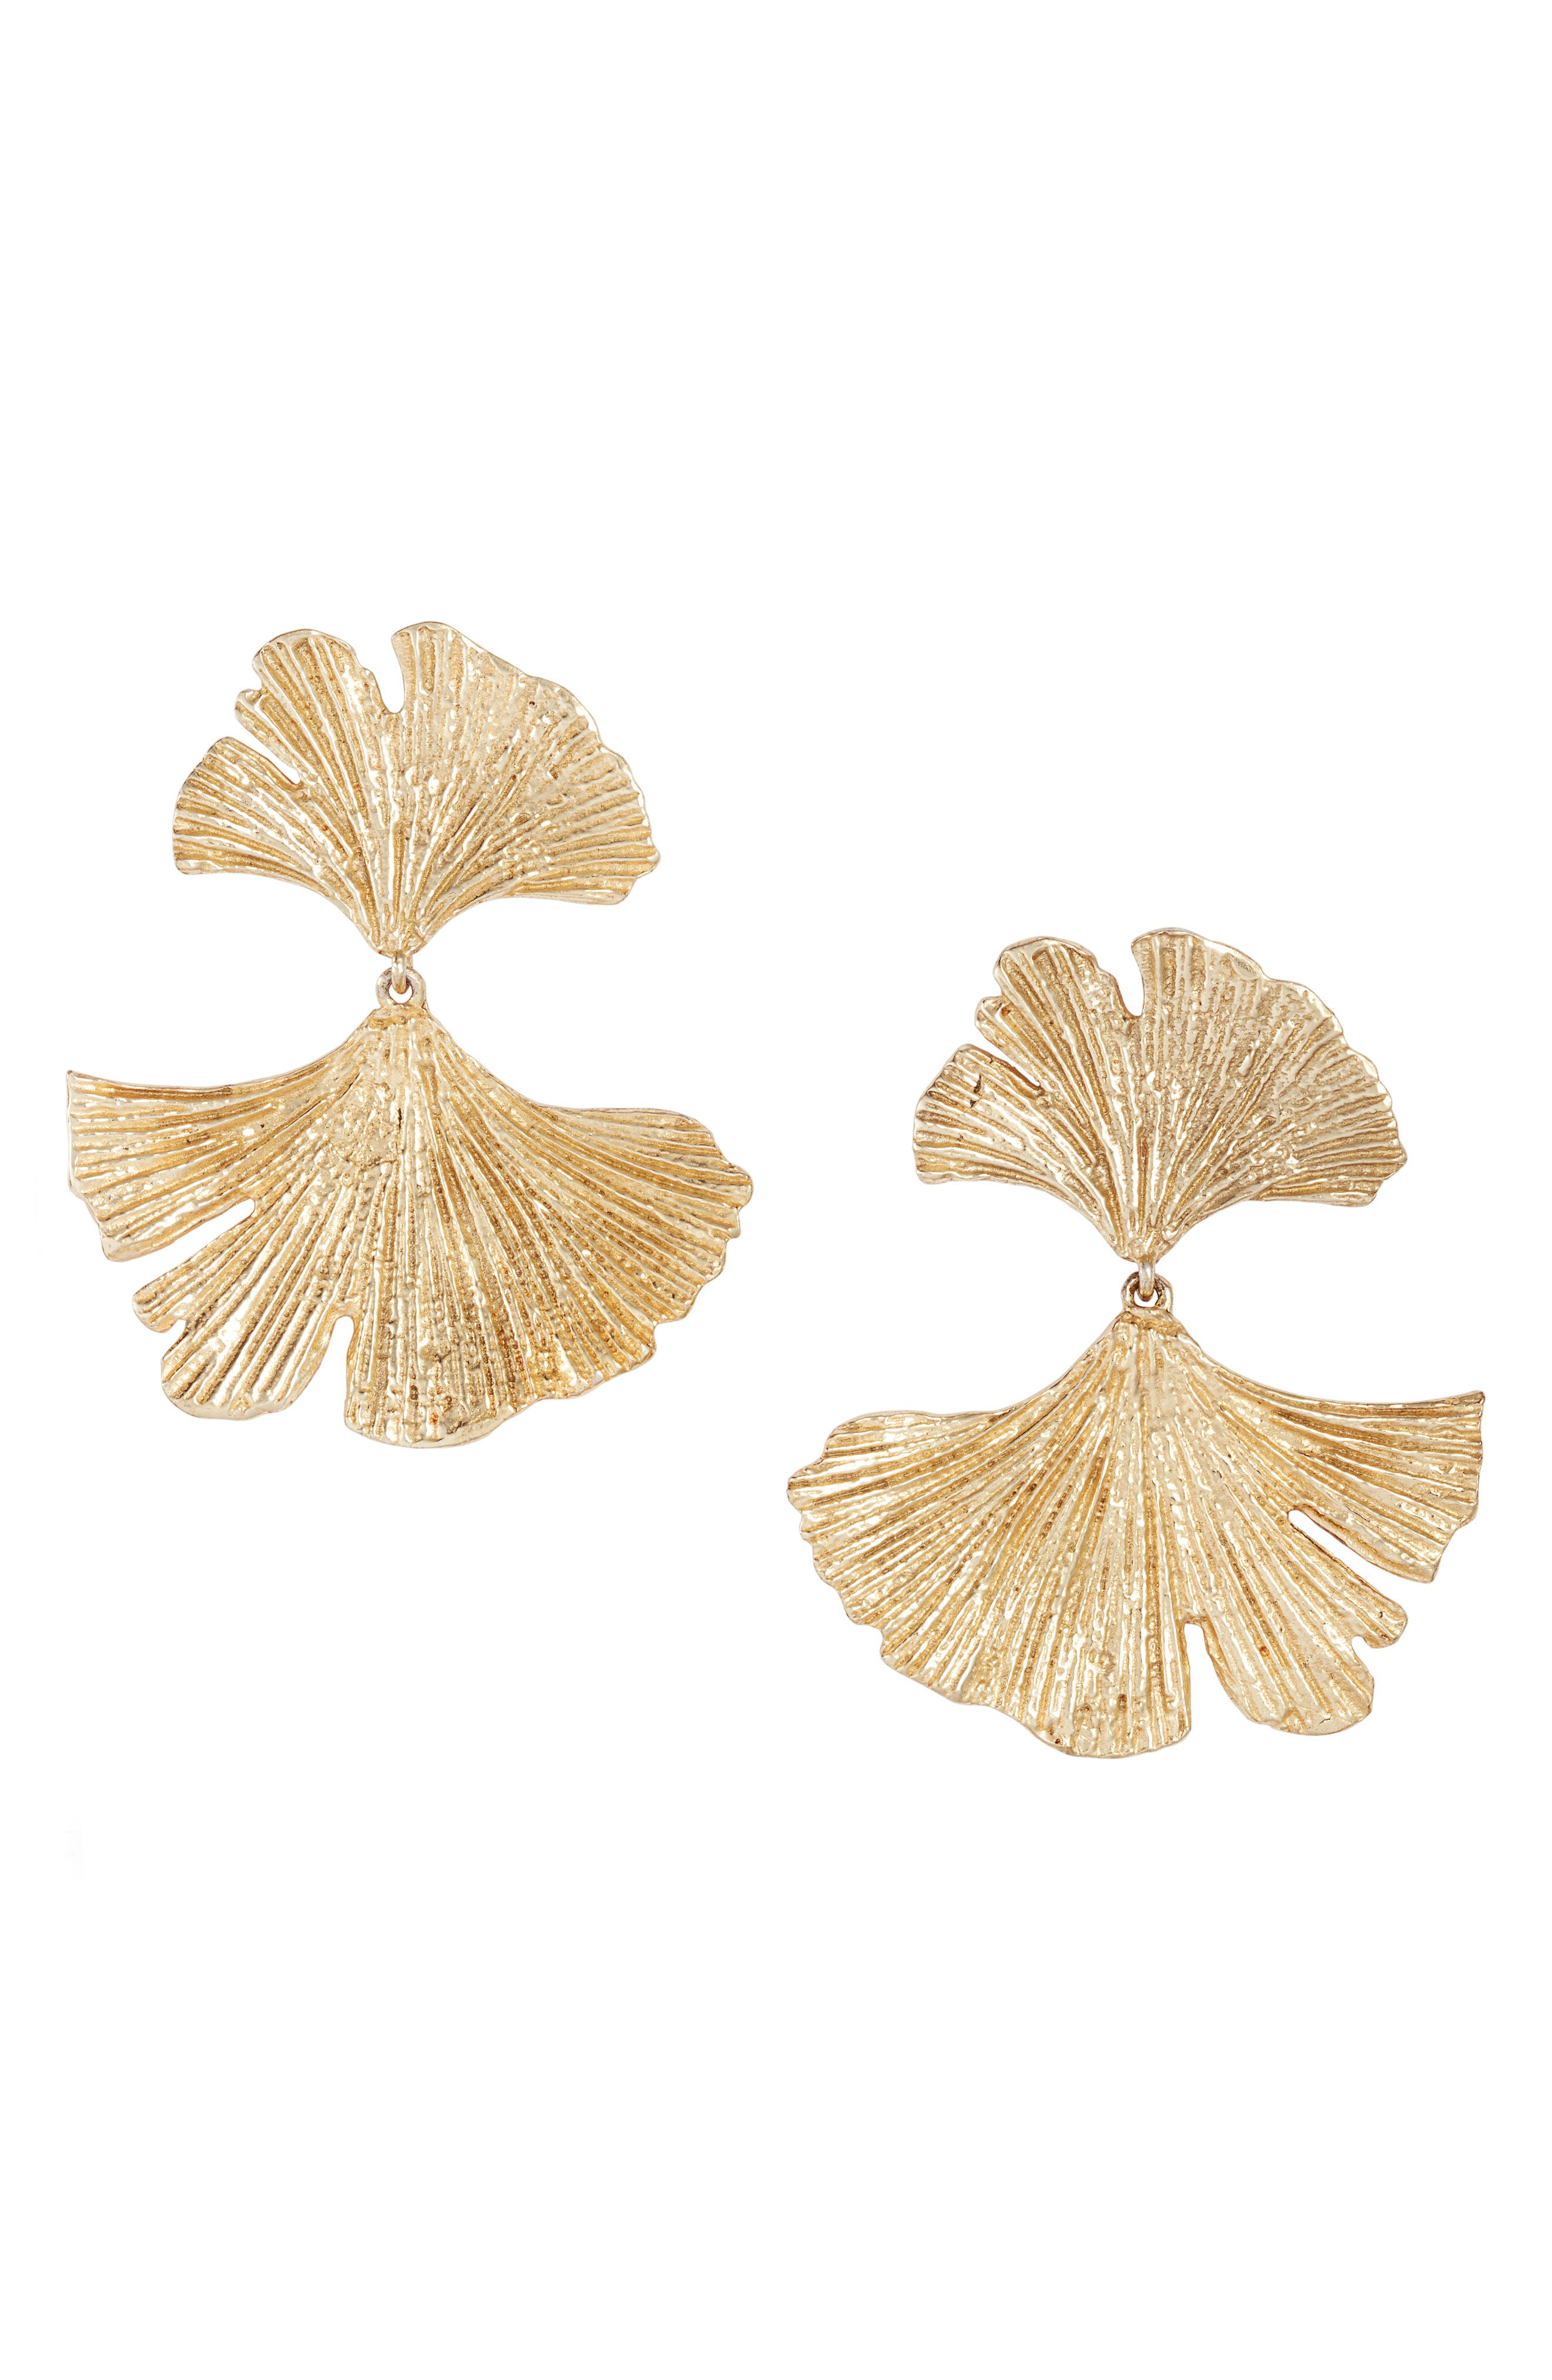 Collections by Joya Gingko Statement Earrings in Gold at Nordstrom